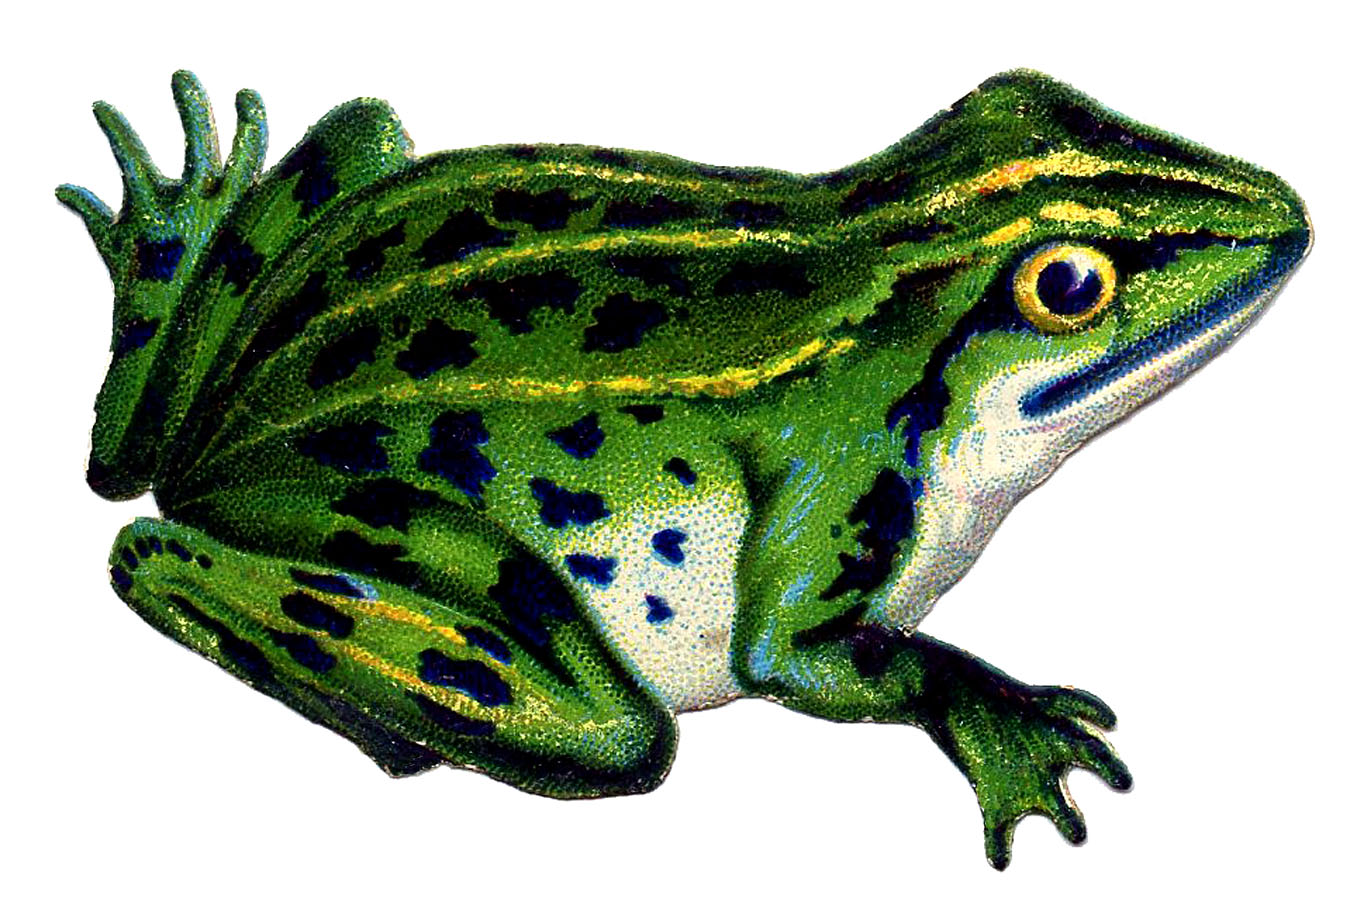 9 Frog Images and Clip Art! - The Graphics Fairy